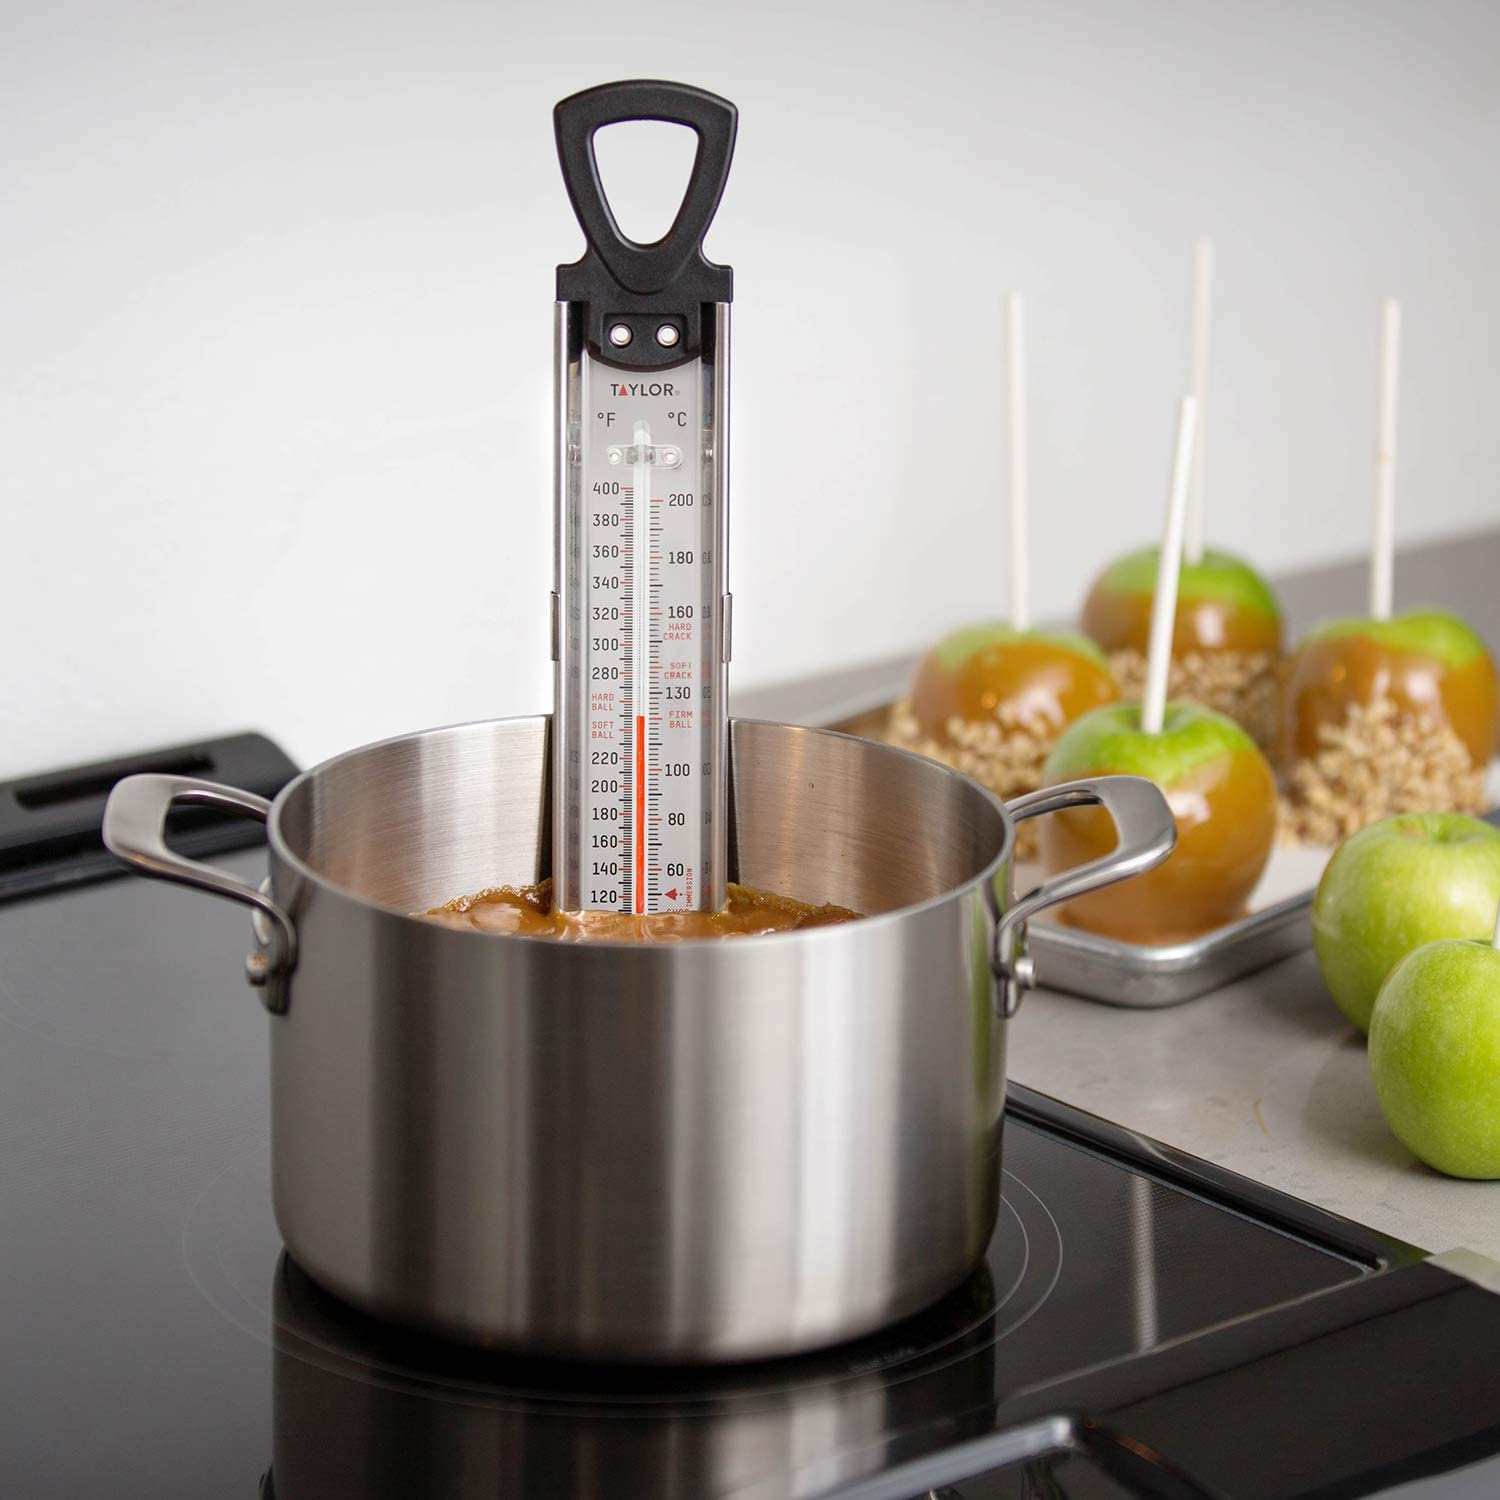 Taylor Precision 5983 RA17724 Deep Fry Thermometer